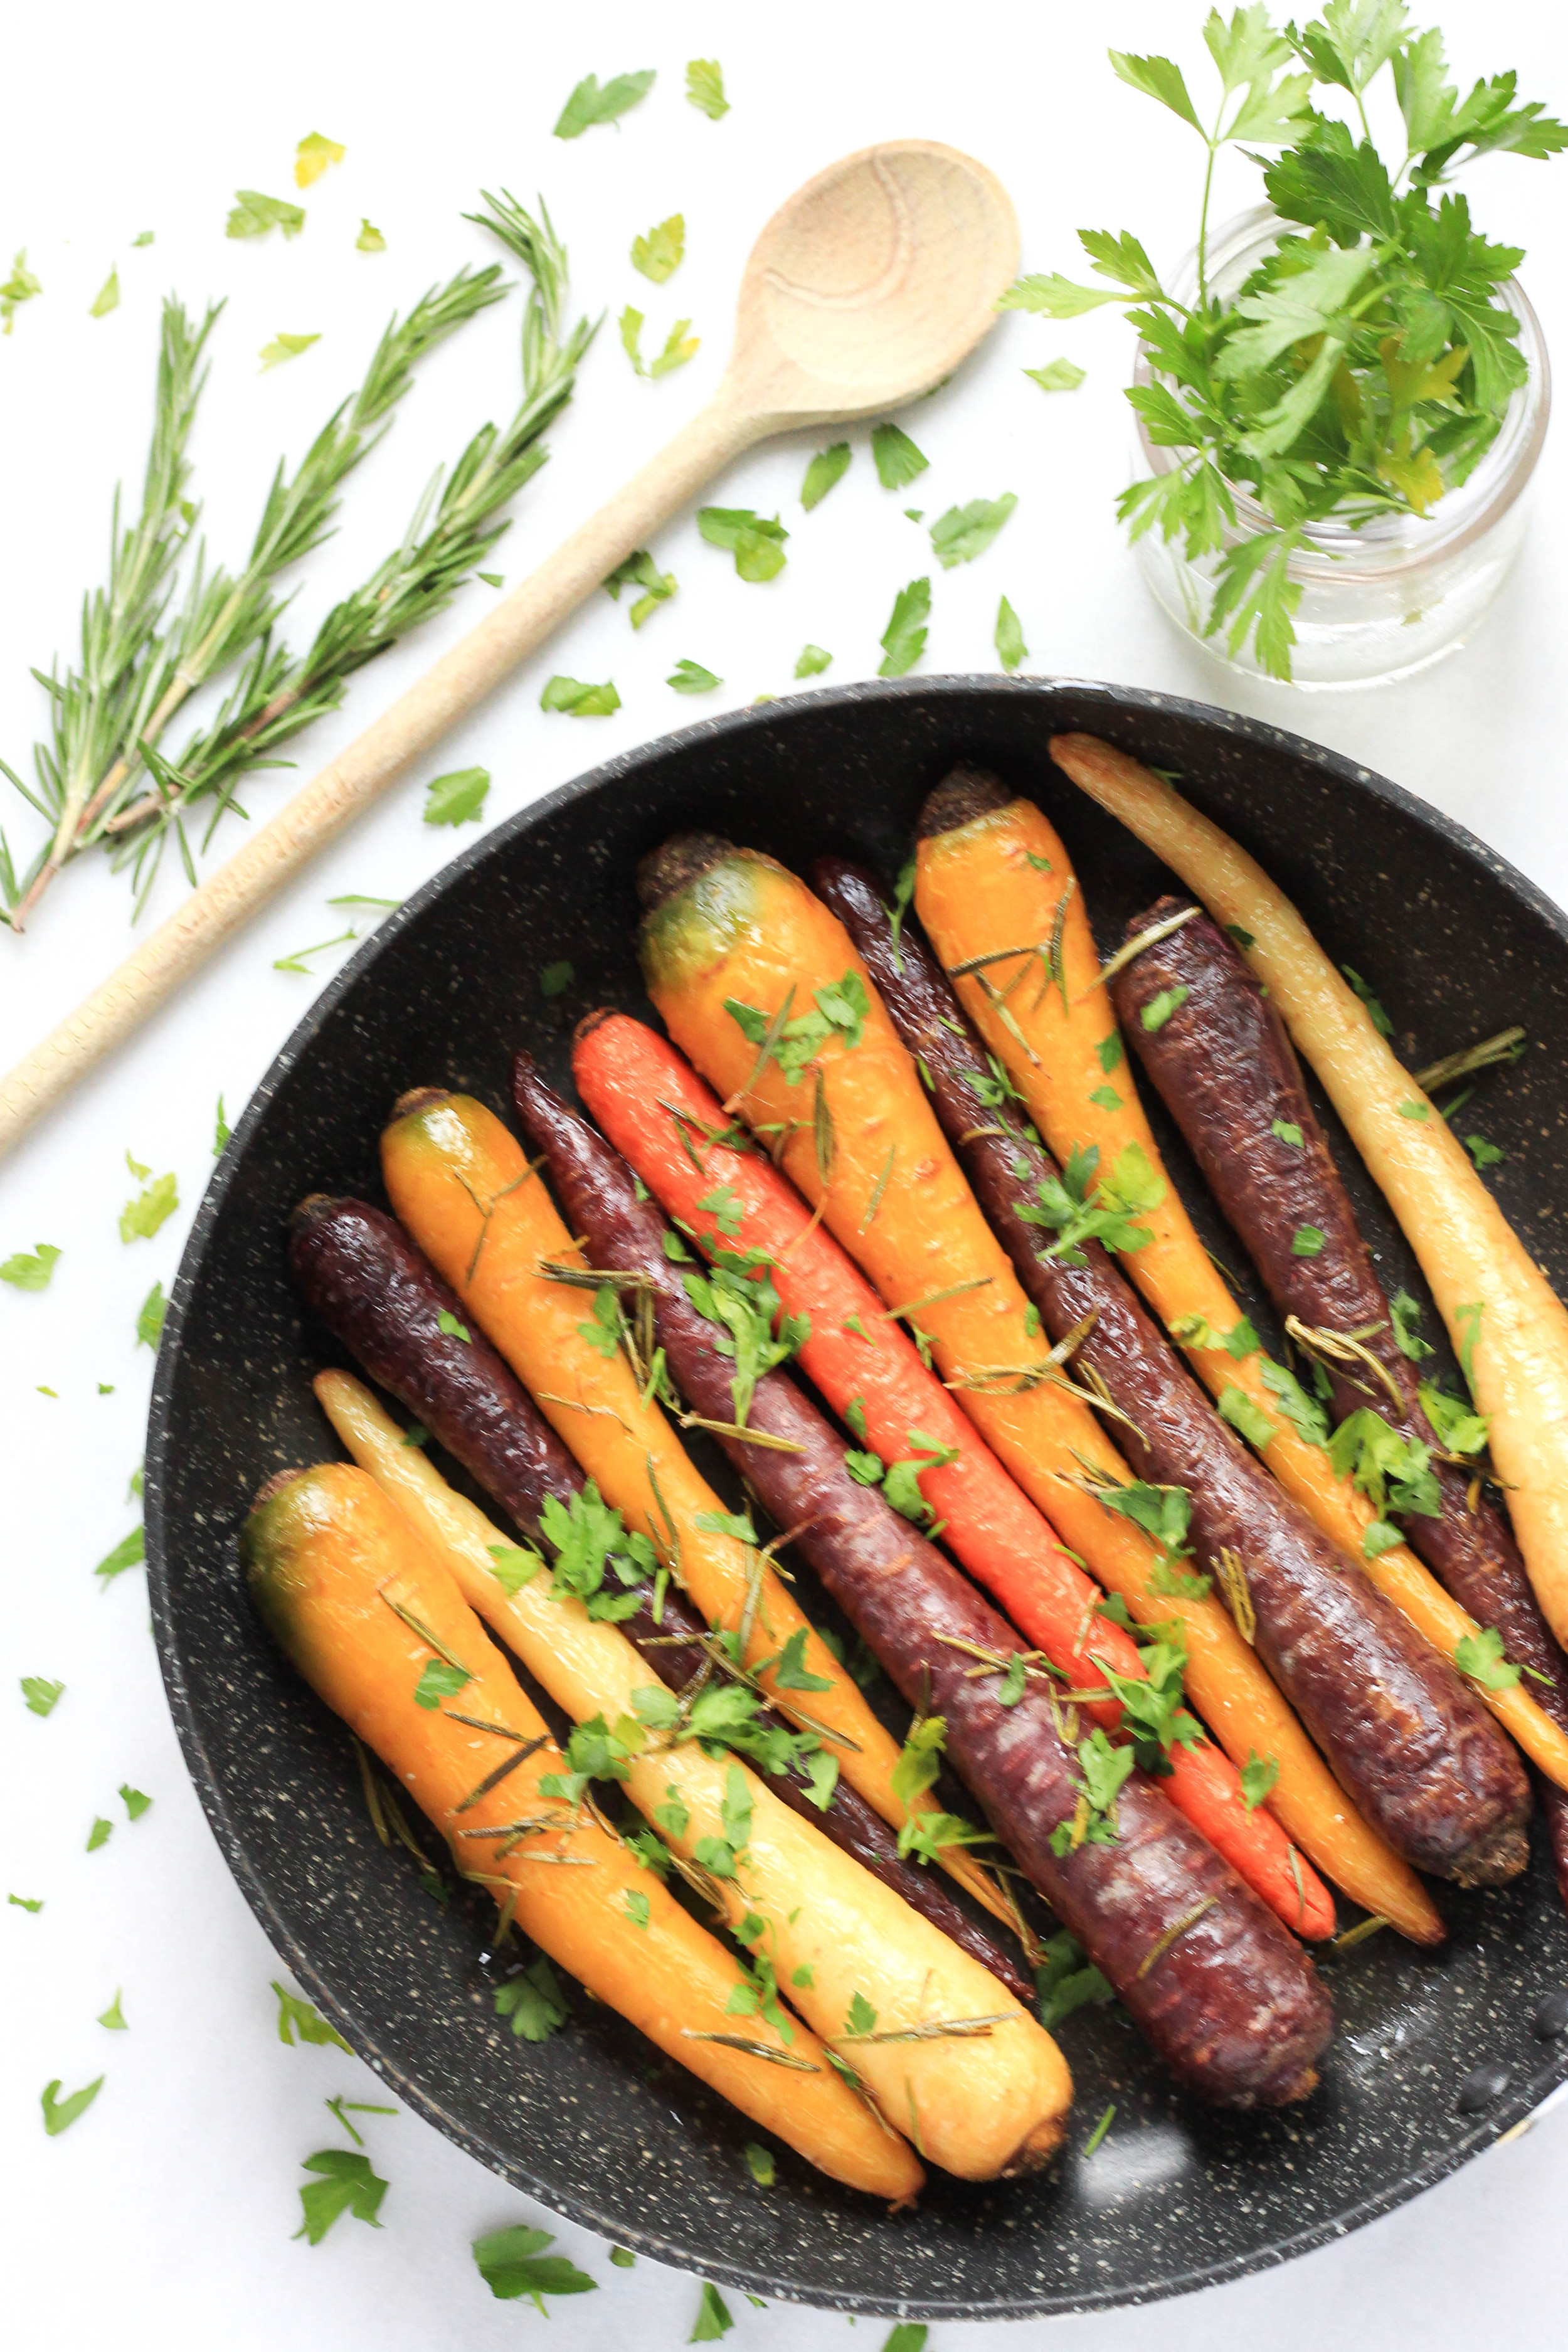 Roasted Rainbow Carrots with Rosemary and Parsley3.jpg